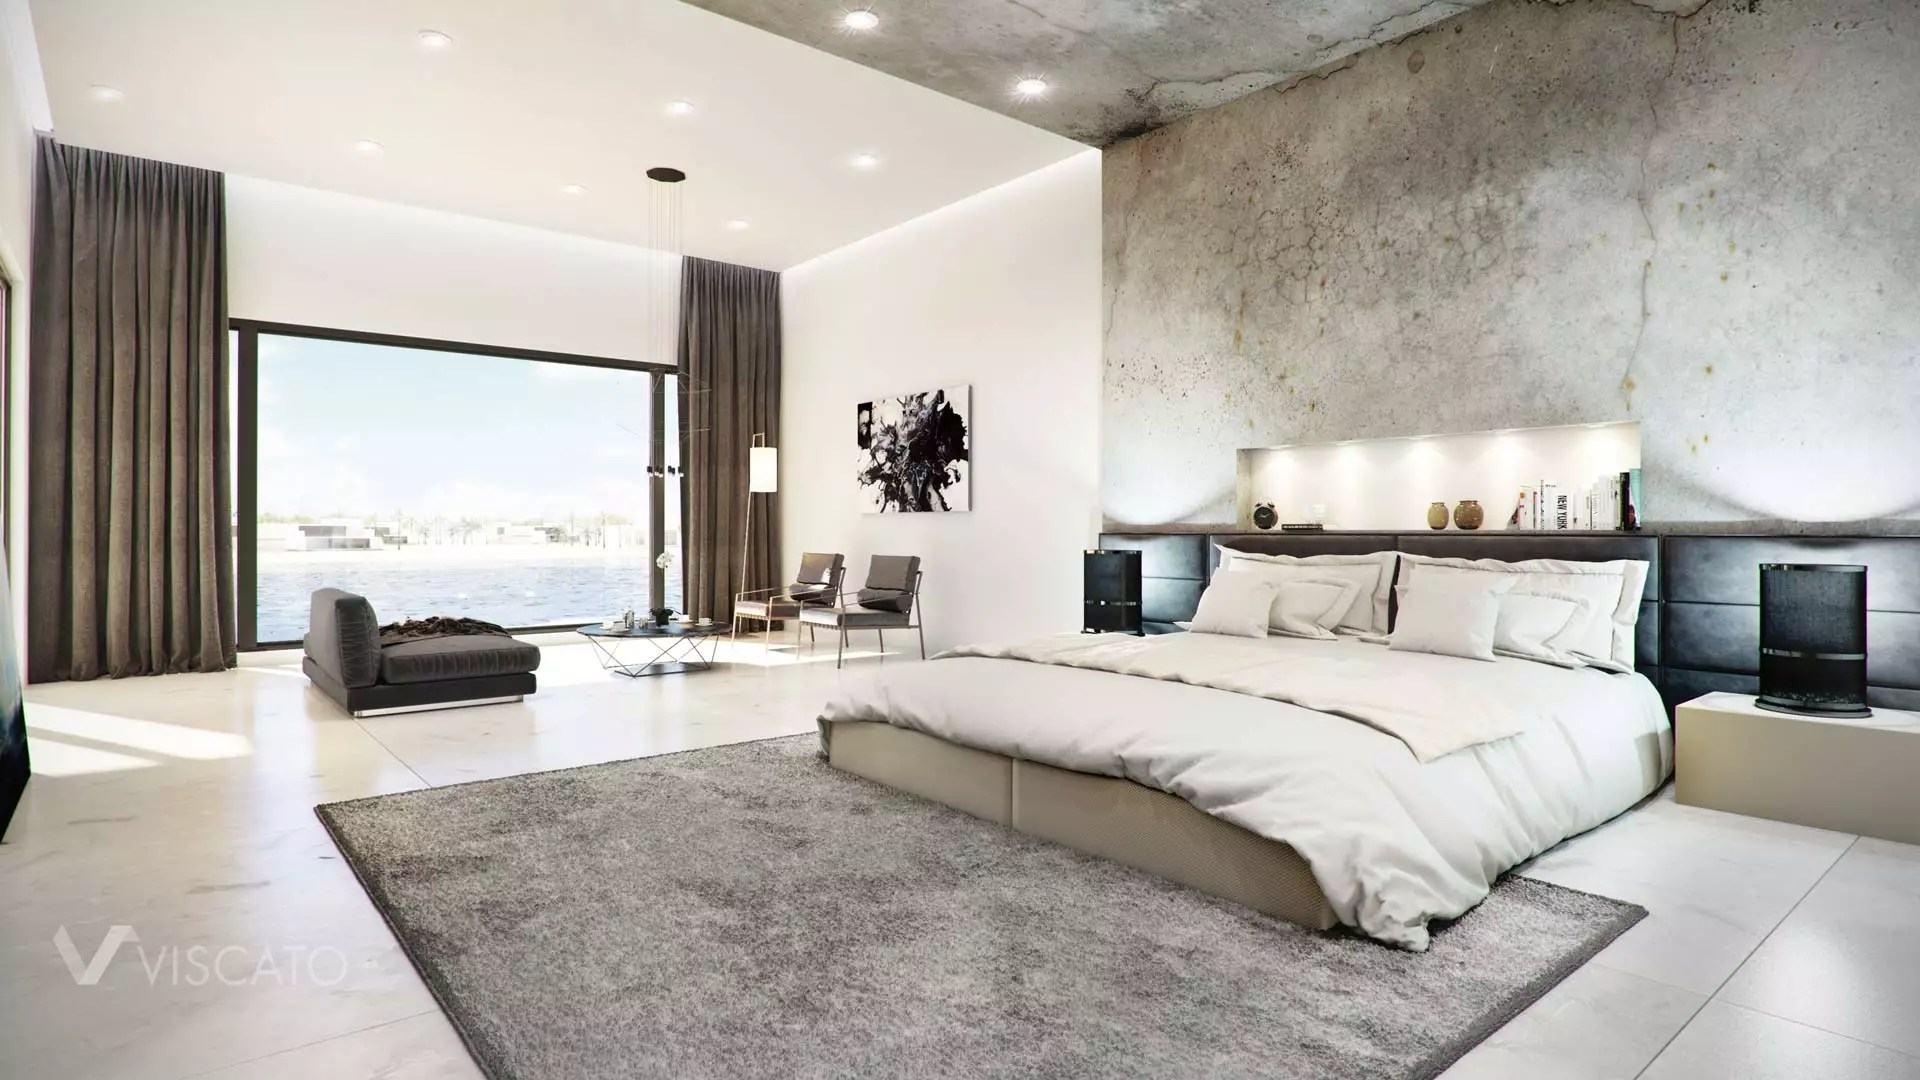 CONCRETE FINISHED MODERN BEDROOM  Viscato